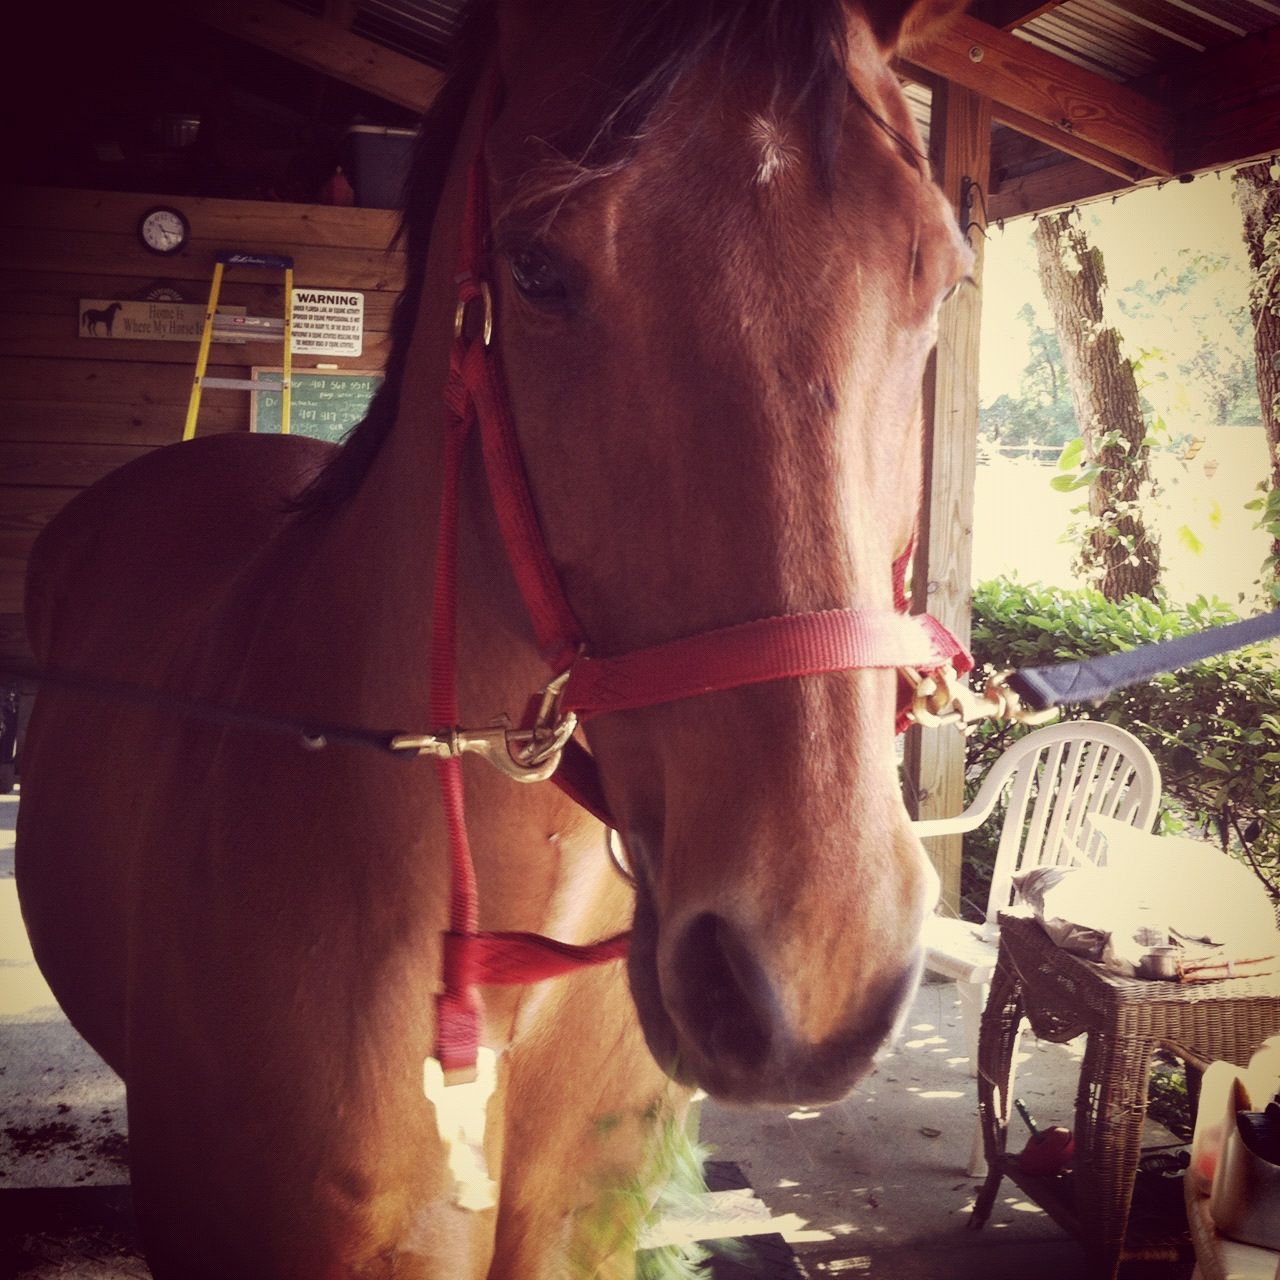 Justin the horse eating a carrot